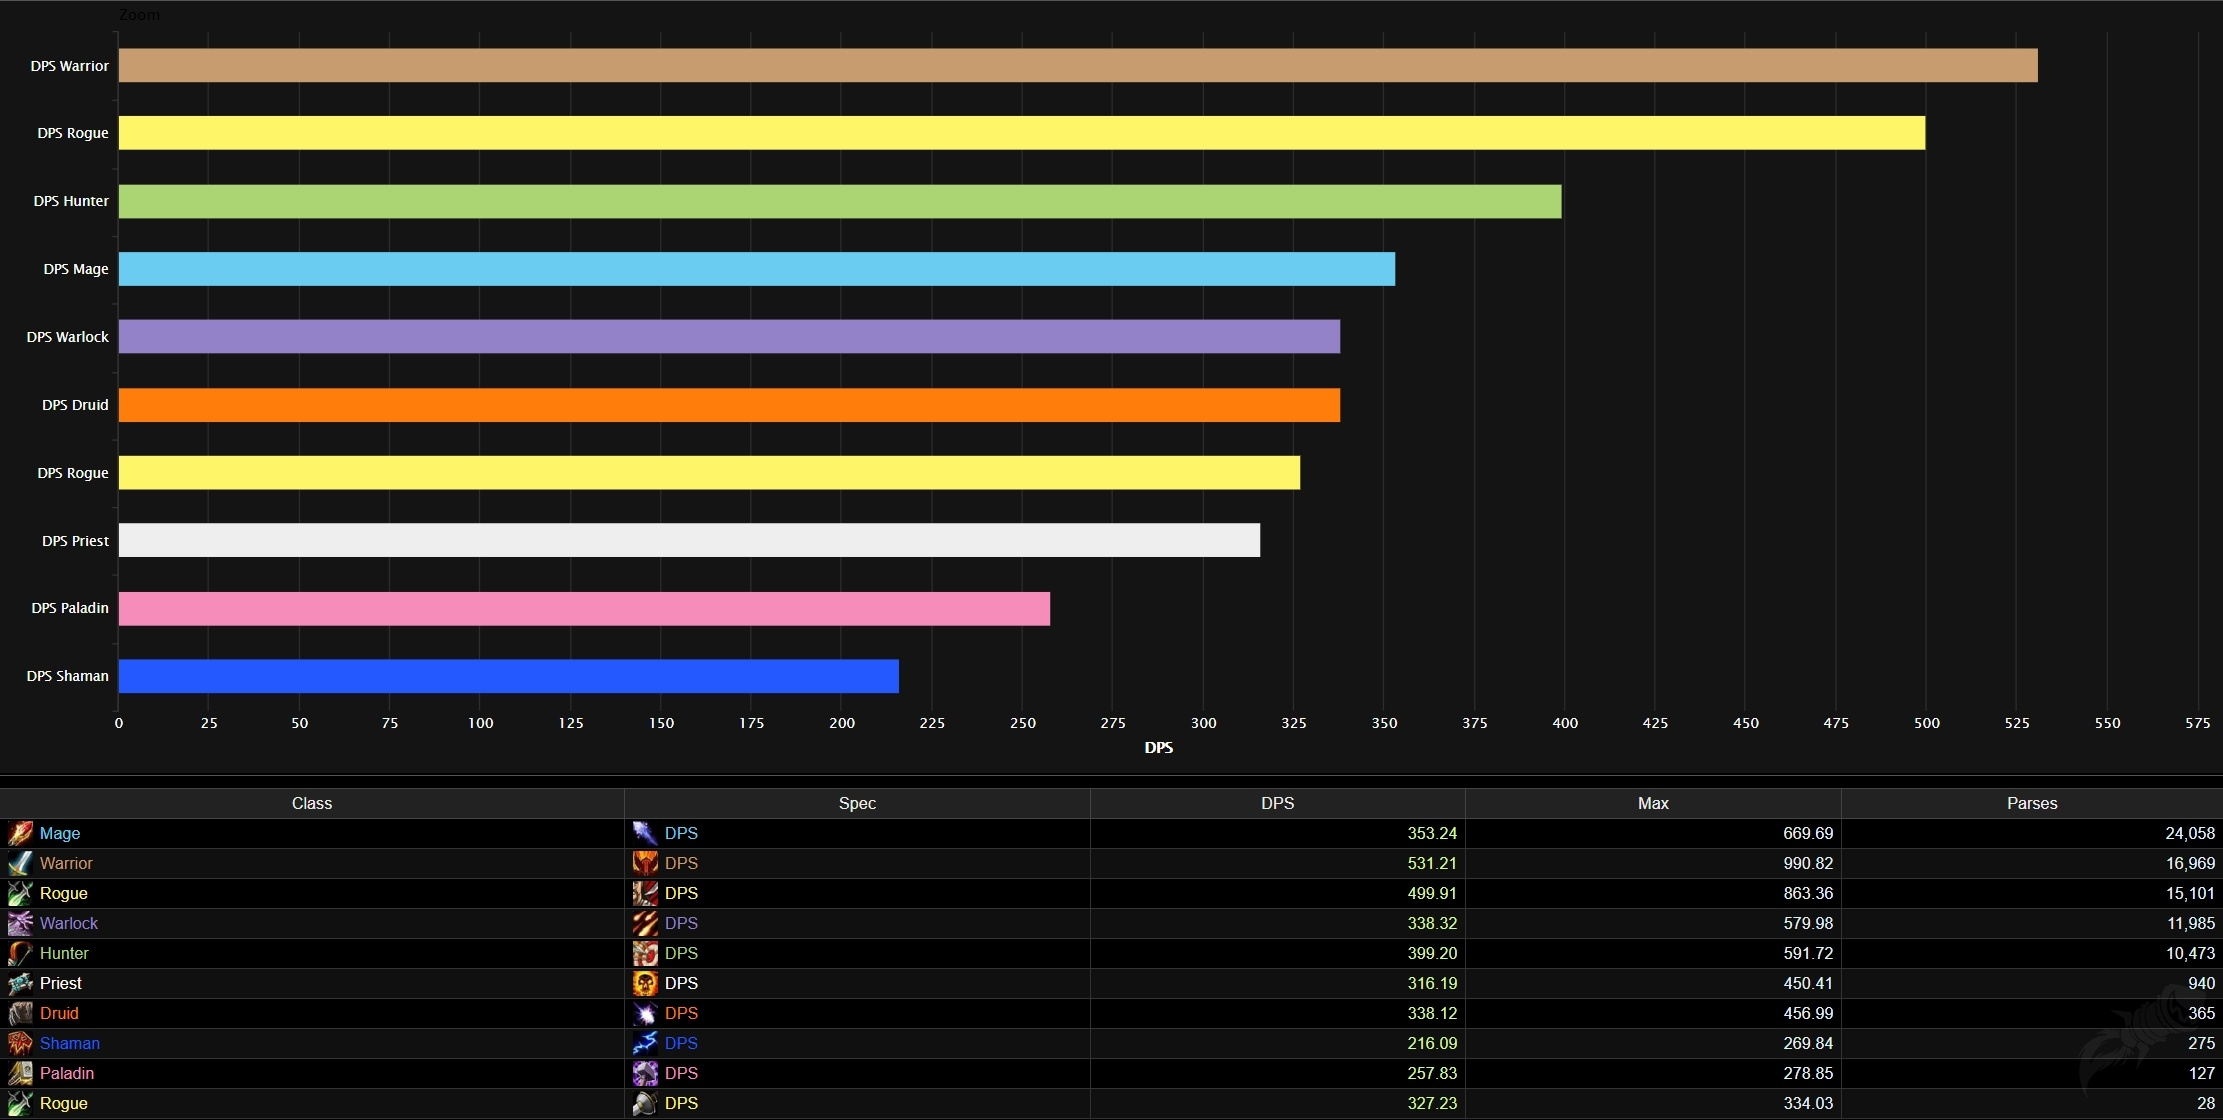 Best Dps Tier List Rankings For Wow Classic Phase 1 Molten Core And Onyxia Wowhead News